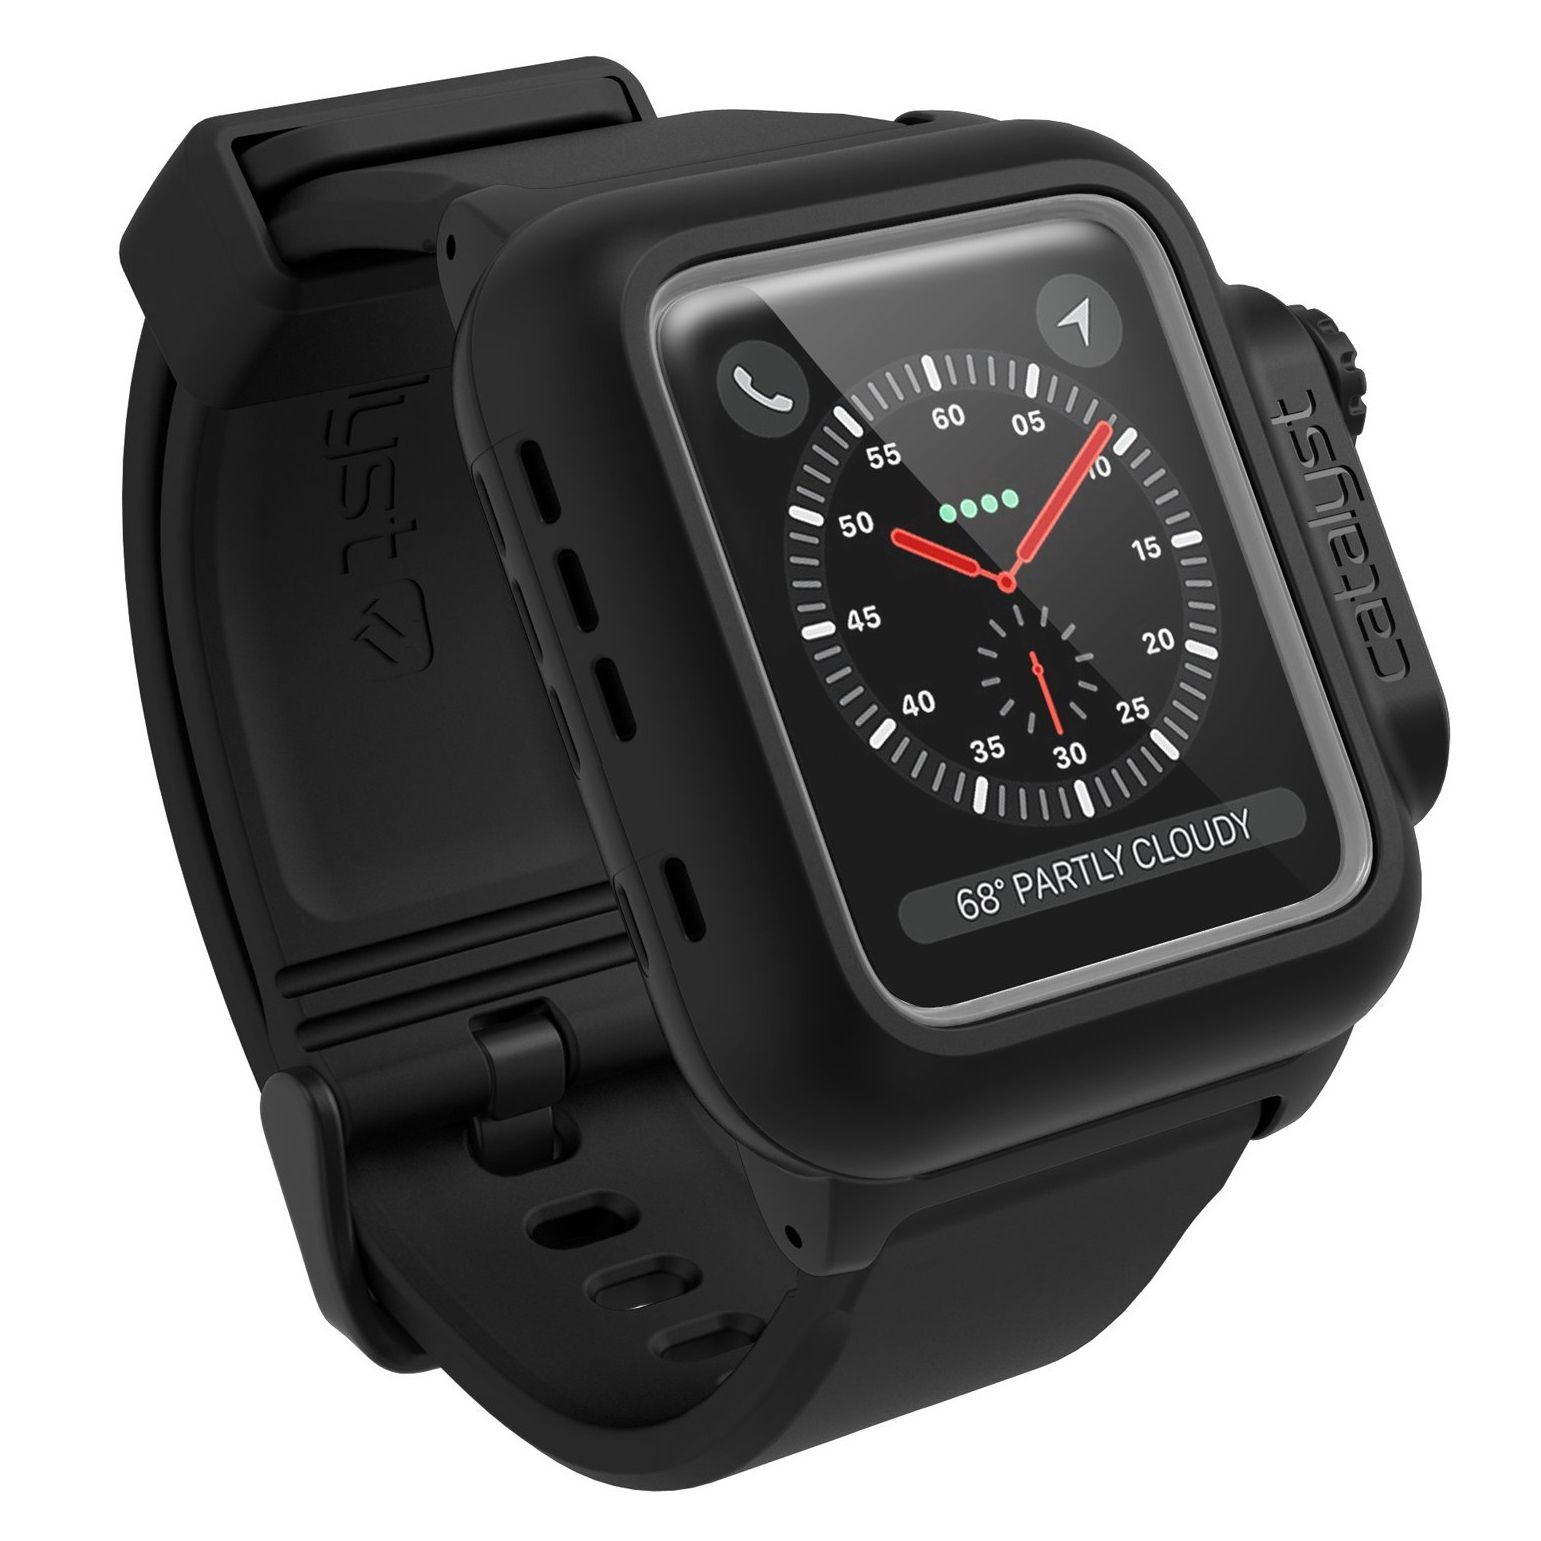 7 Best Apple Watch Cases For 2018 Protective Spigen Tough Armor 2 Case 42mm Series 3 Silver Covers